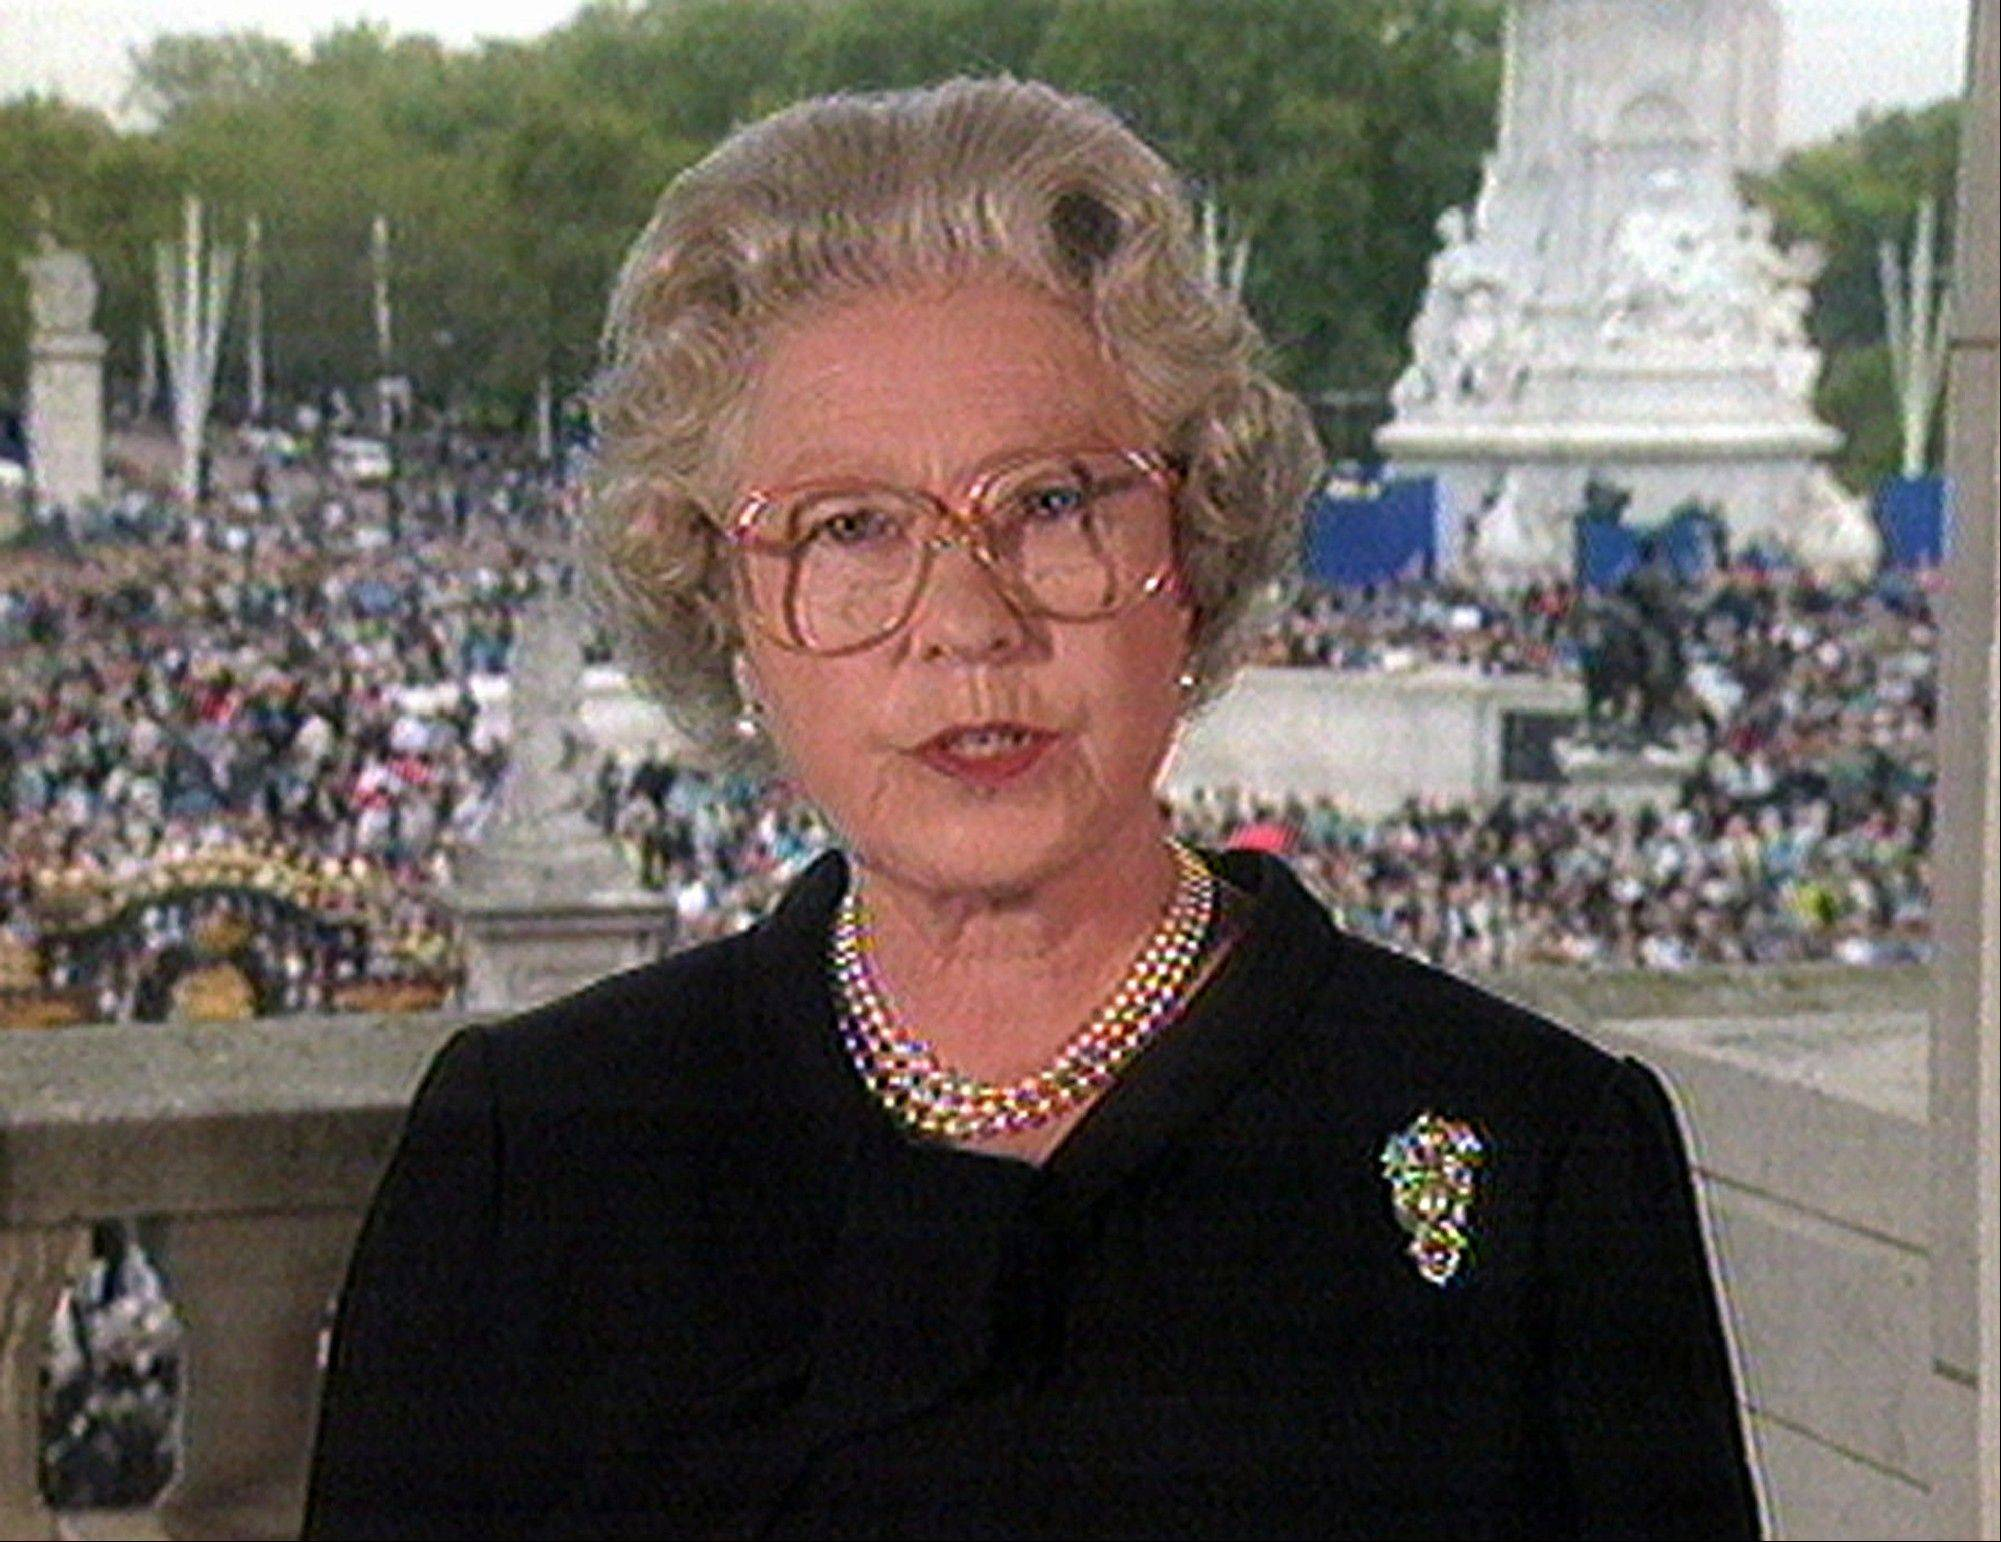 In this Sept. 5, 1997, image from video, Britain's Queen Elizabeth II speaks from London's Buckingham Palace to pay tribute to Diana, Princess of Wales.